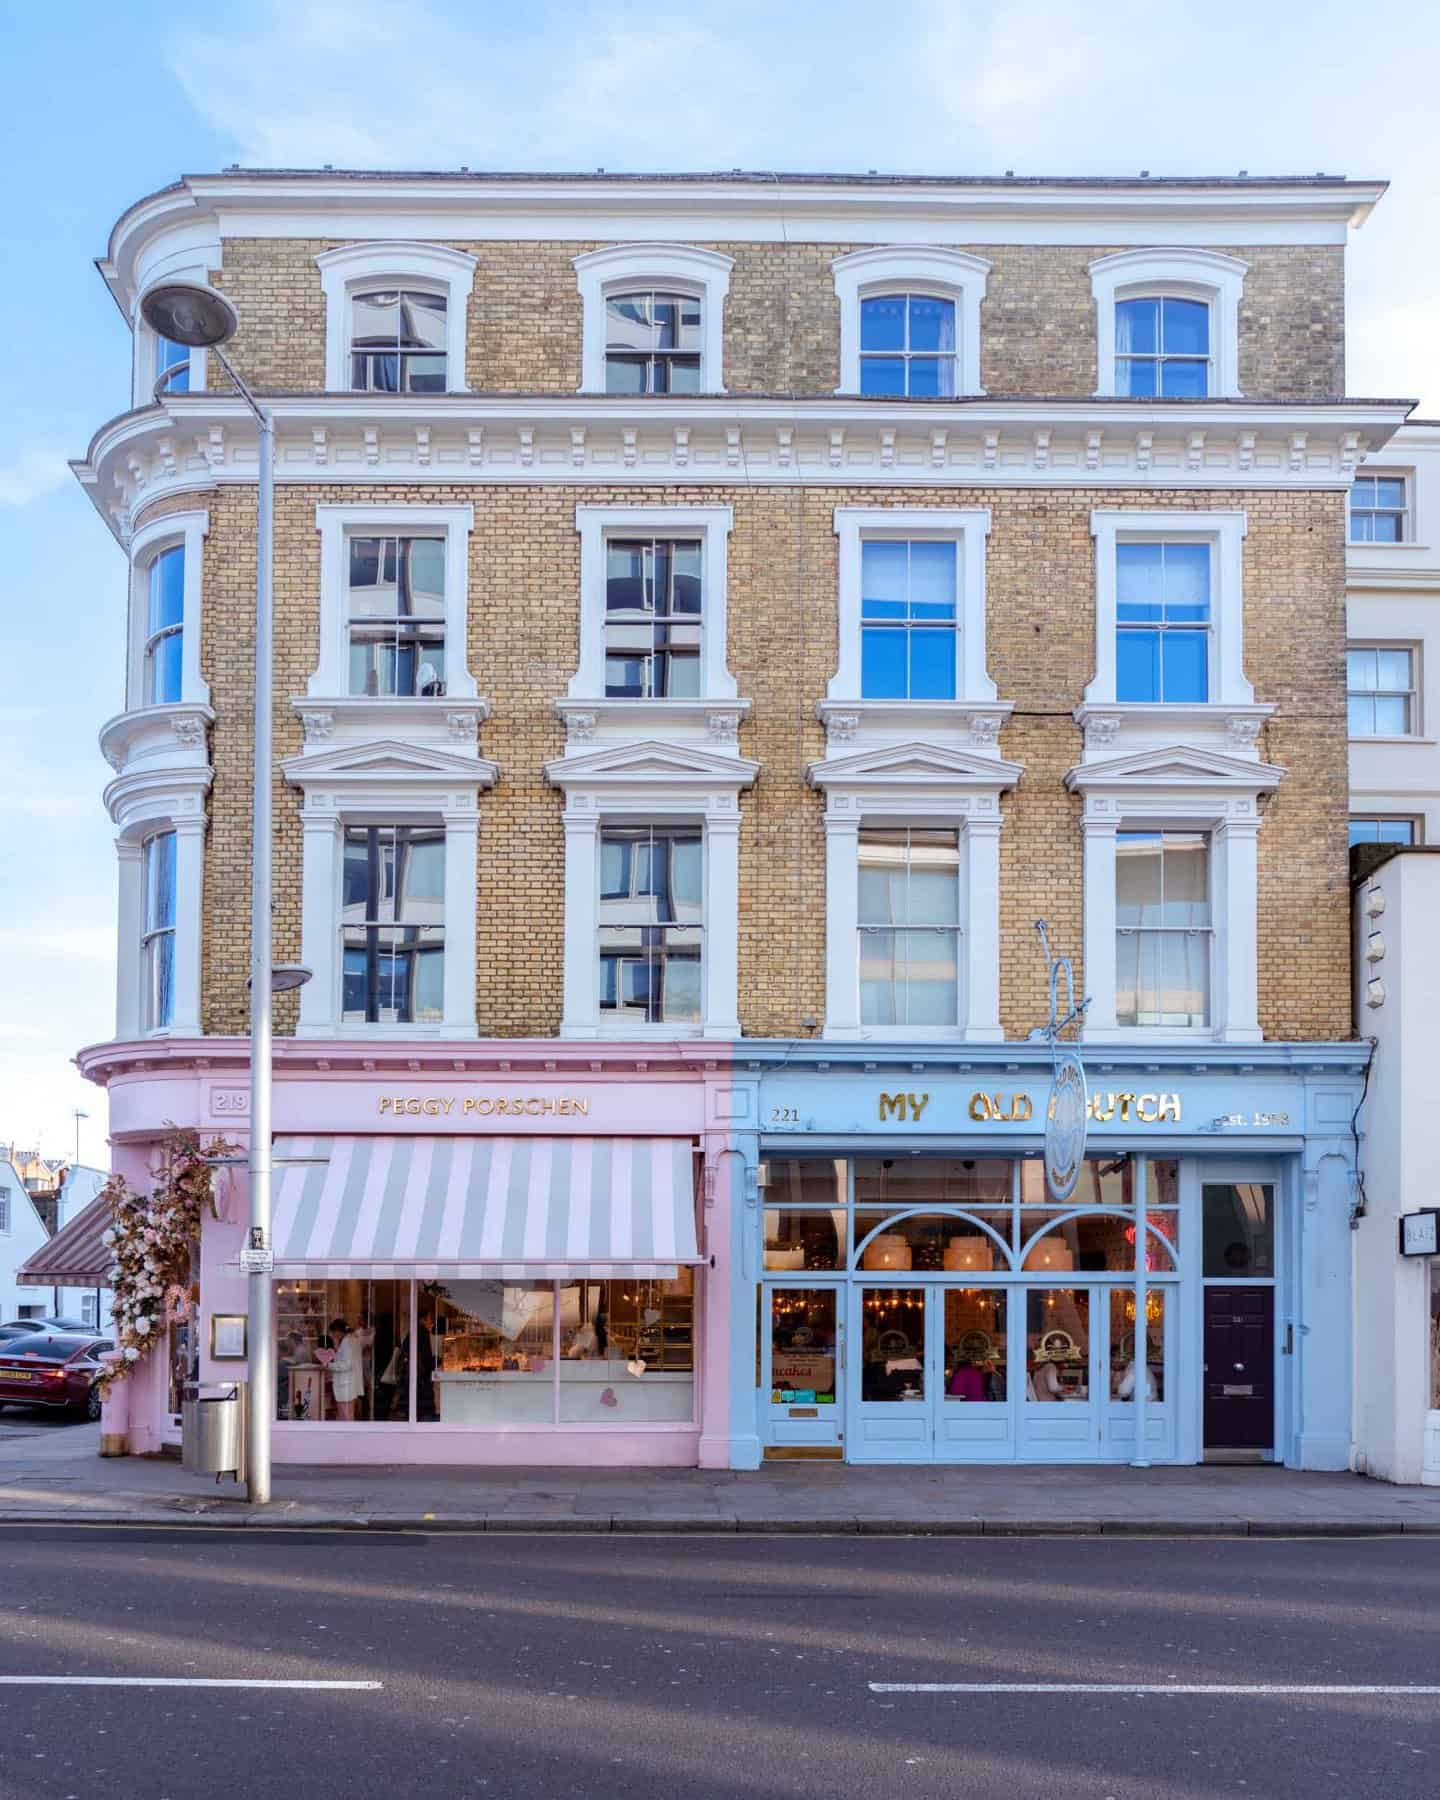 Peggy Porschen and My Old Dutch beautiful buildings on famous King's Road London